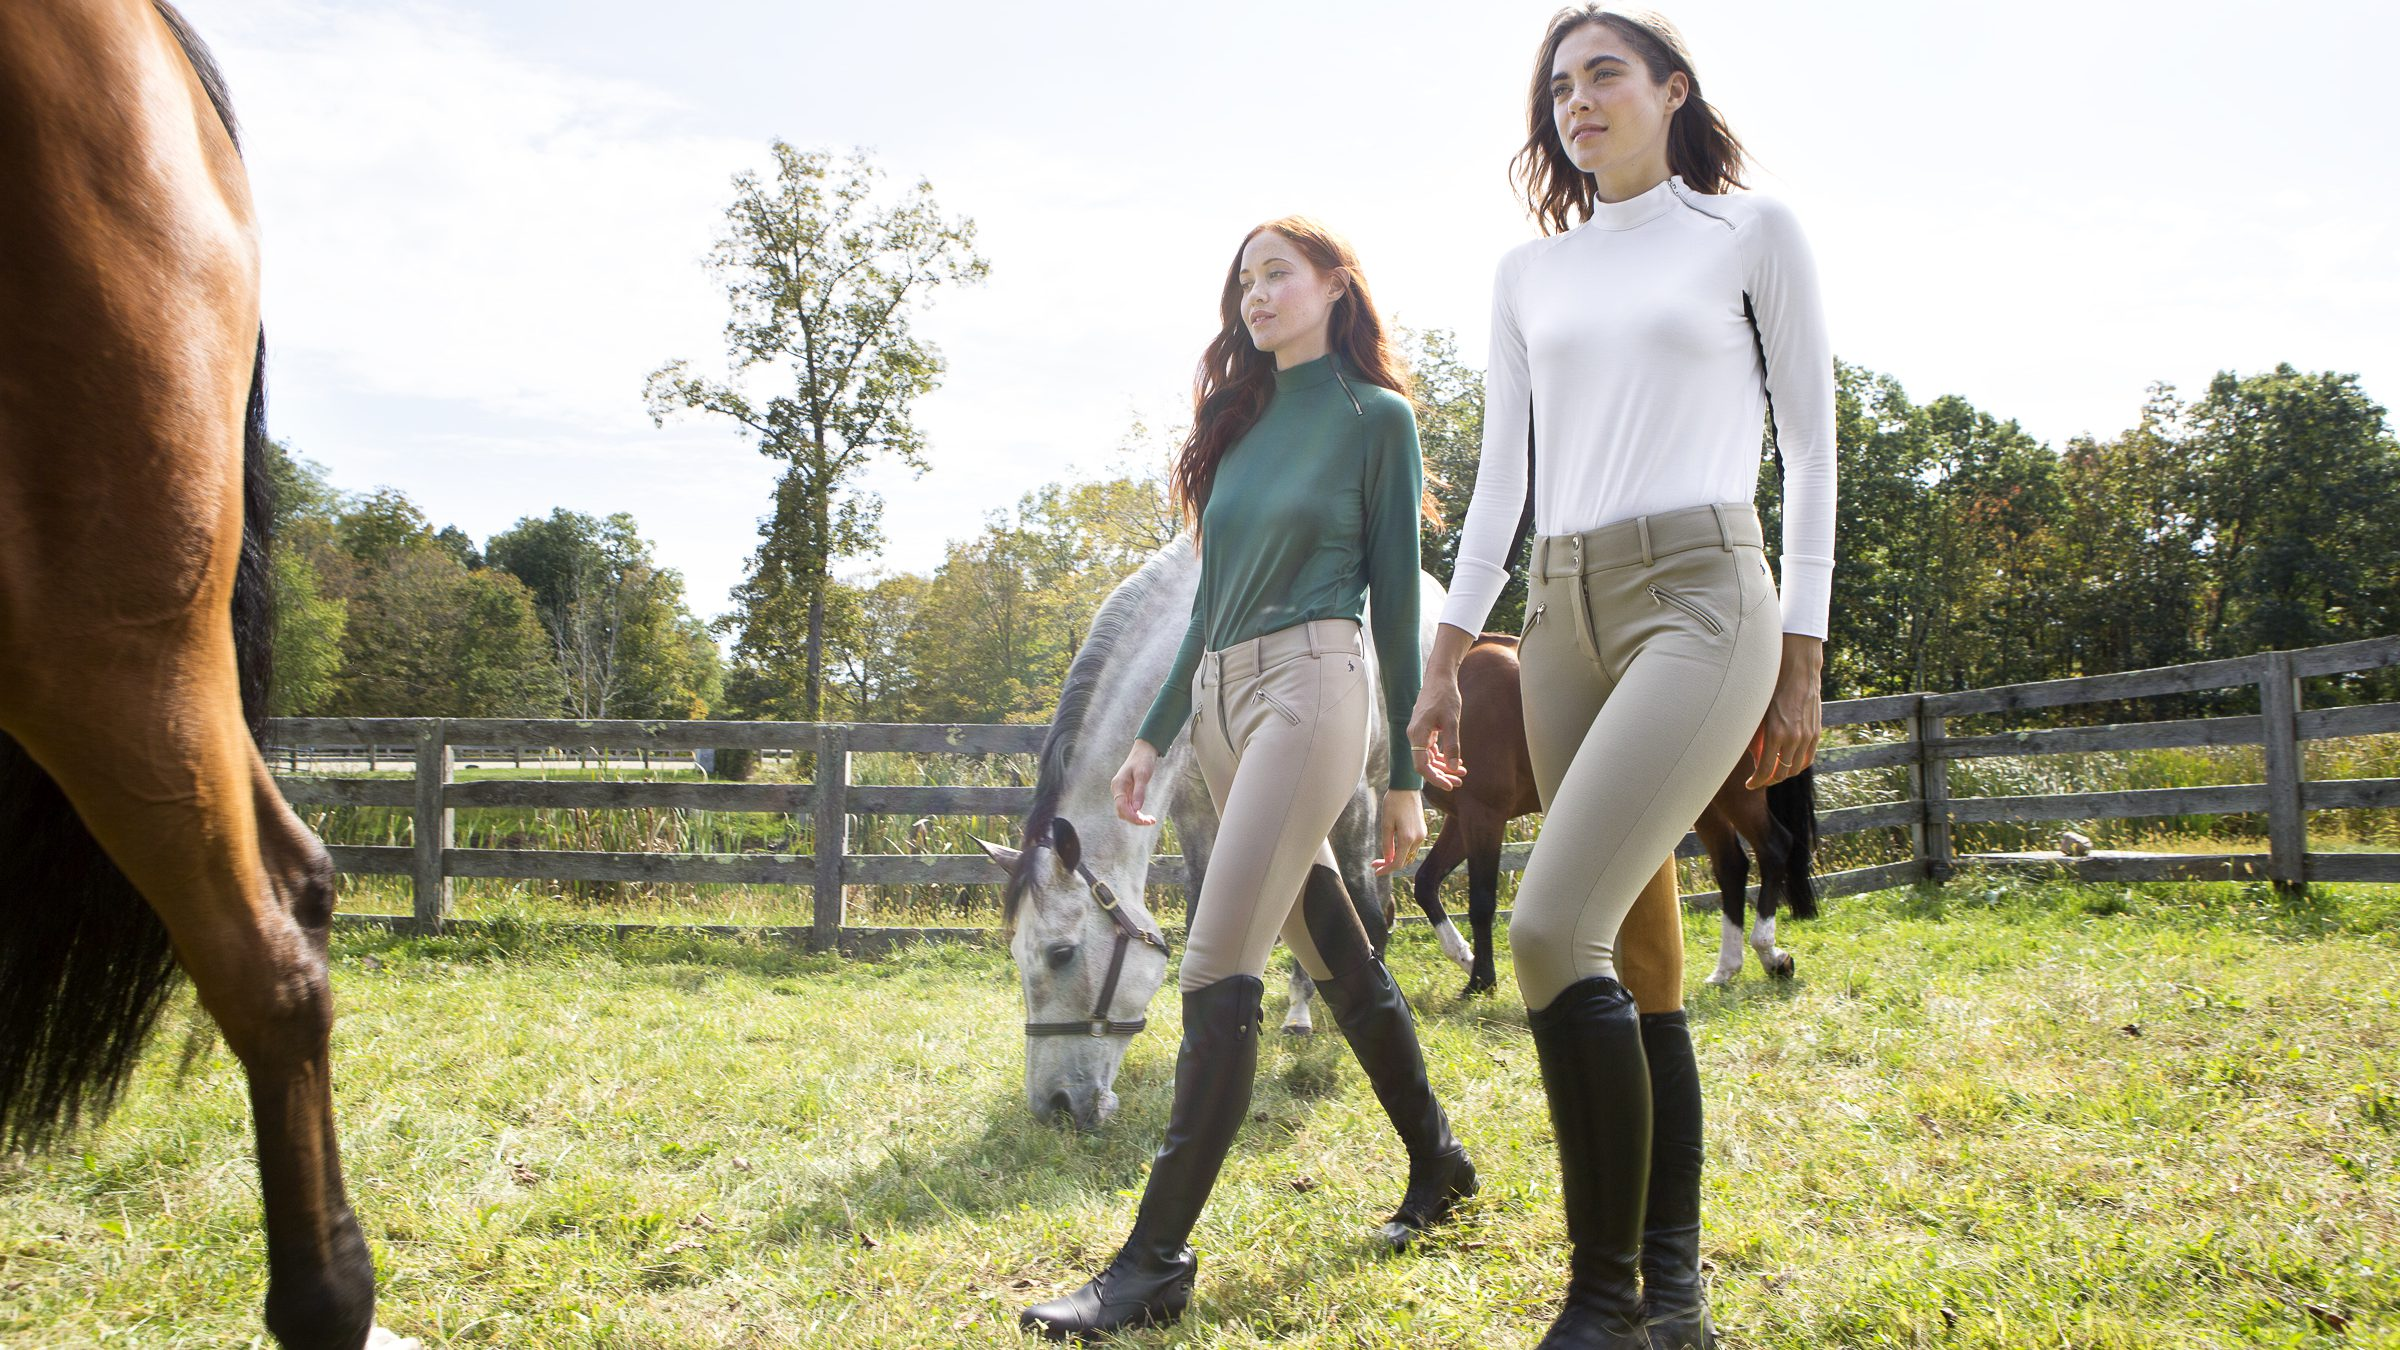 Horse riding clothes are the new (and original) athleisure — Quartzy